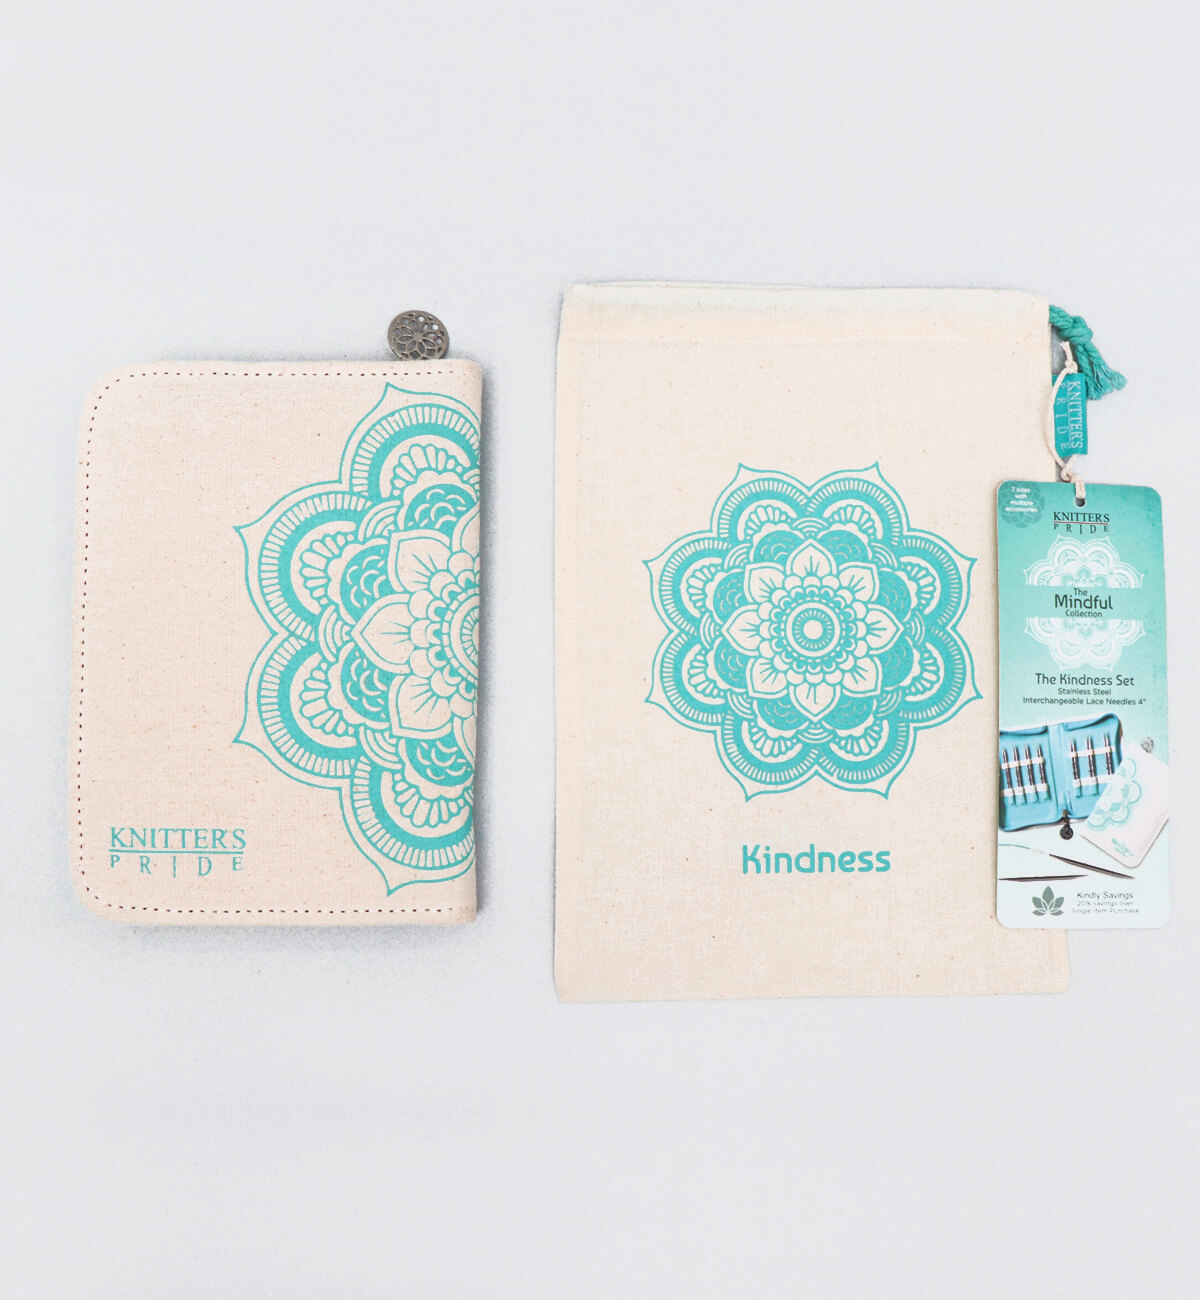 The Mindful Collection Needle Set, Kindness Set